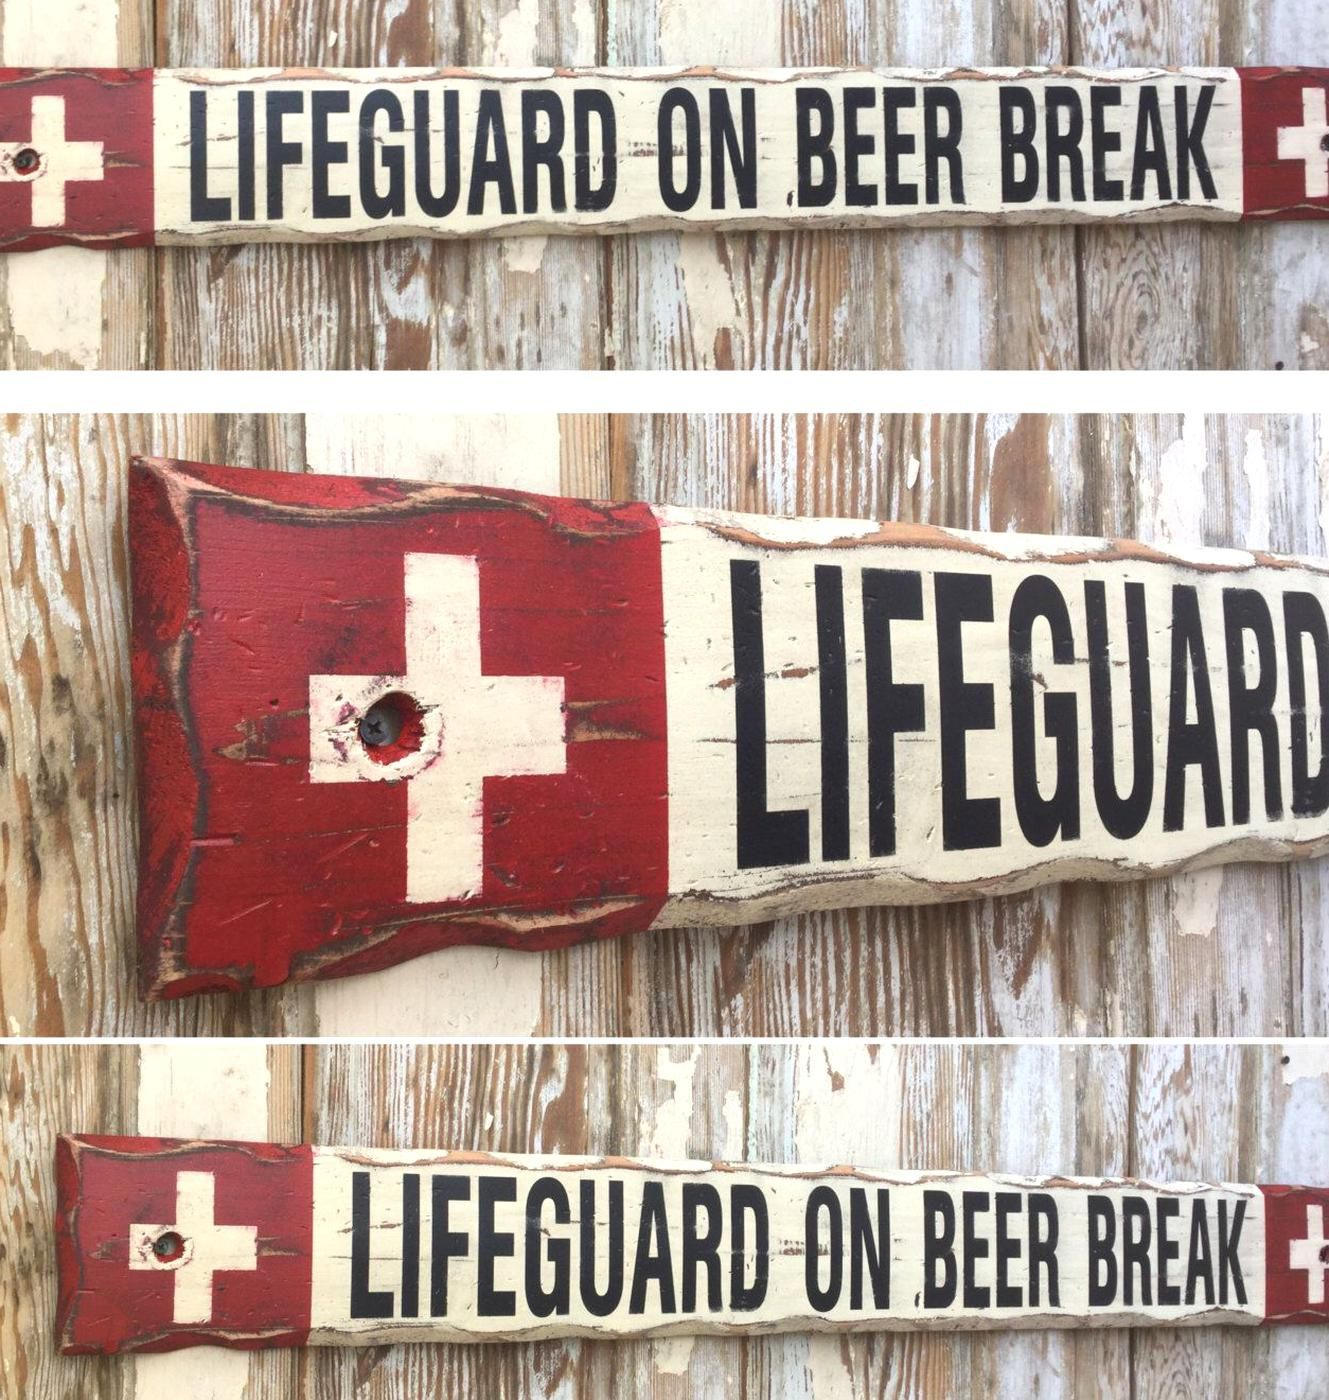 Pin By Shanna Oden On Outdoor Living Back Porch Sitting In 2020 Rustic Wood Signs Beach Signs Wood Signs